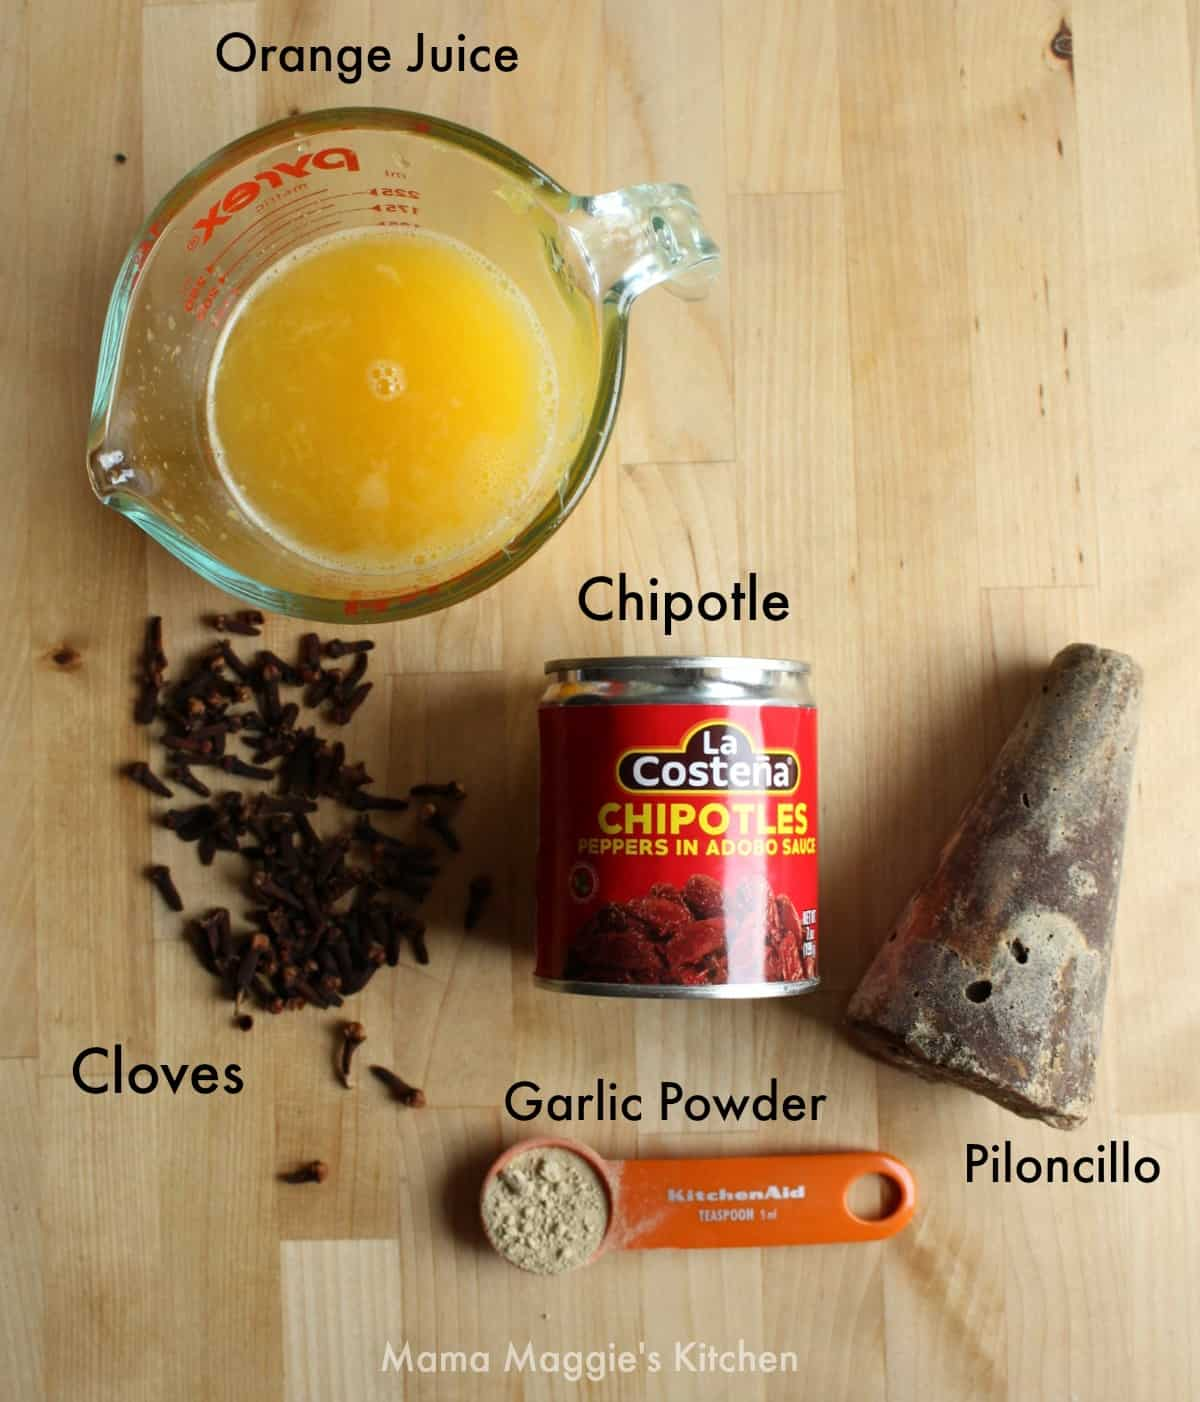 The ingredients for the Piloncillo Chipotle Glaze.